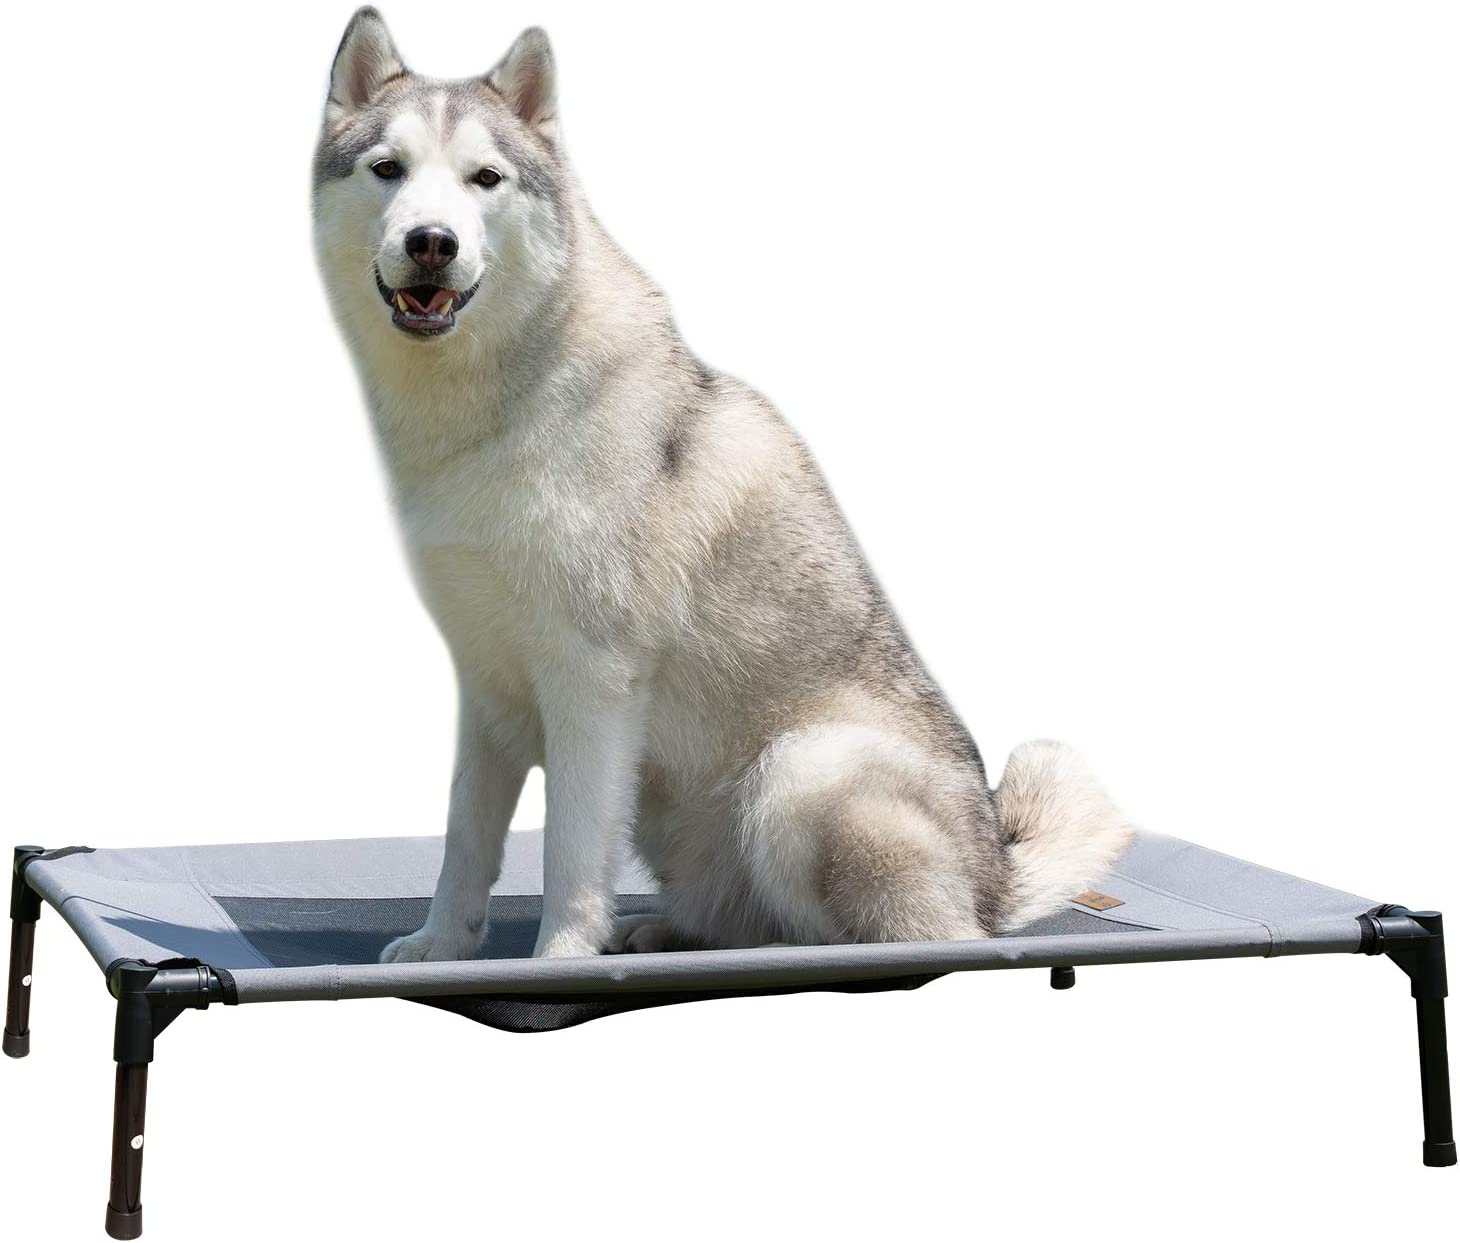 YEPHHO Detachable Elevated Dog Bed Oxford Cloth No-Slip Cool Breathable Durable Pet Bed for Indoor Outdoor 32.2inch x25.3inch x8.4inch Grey